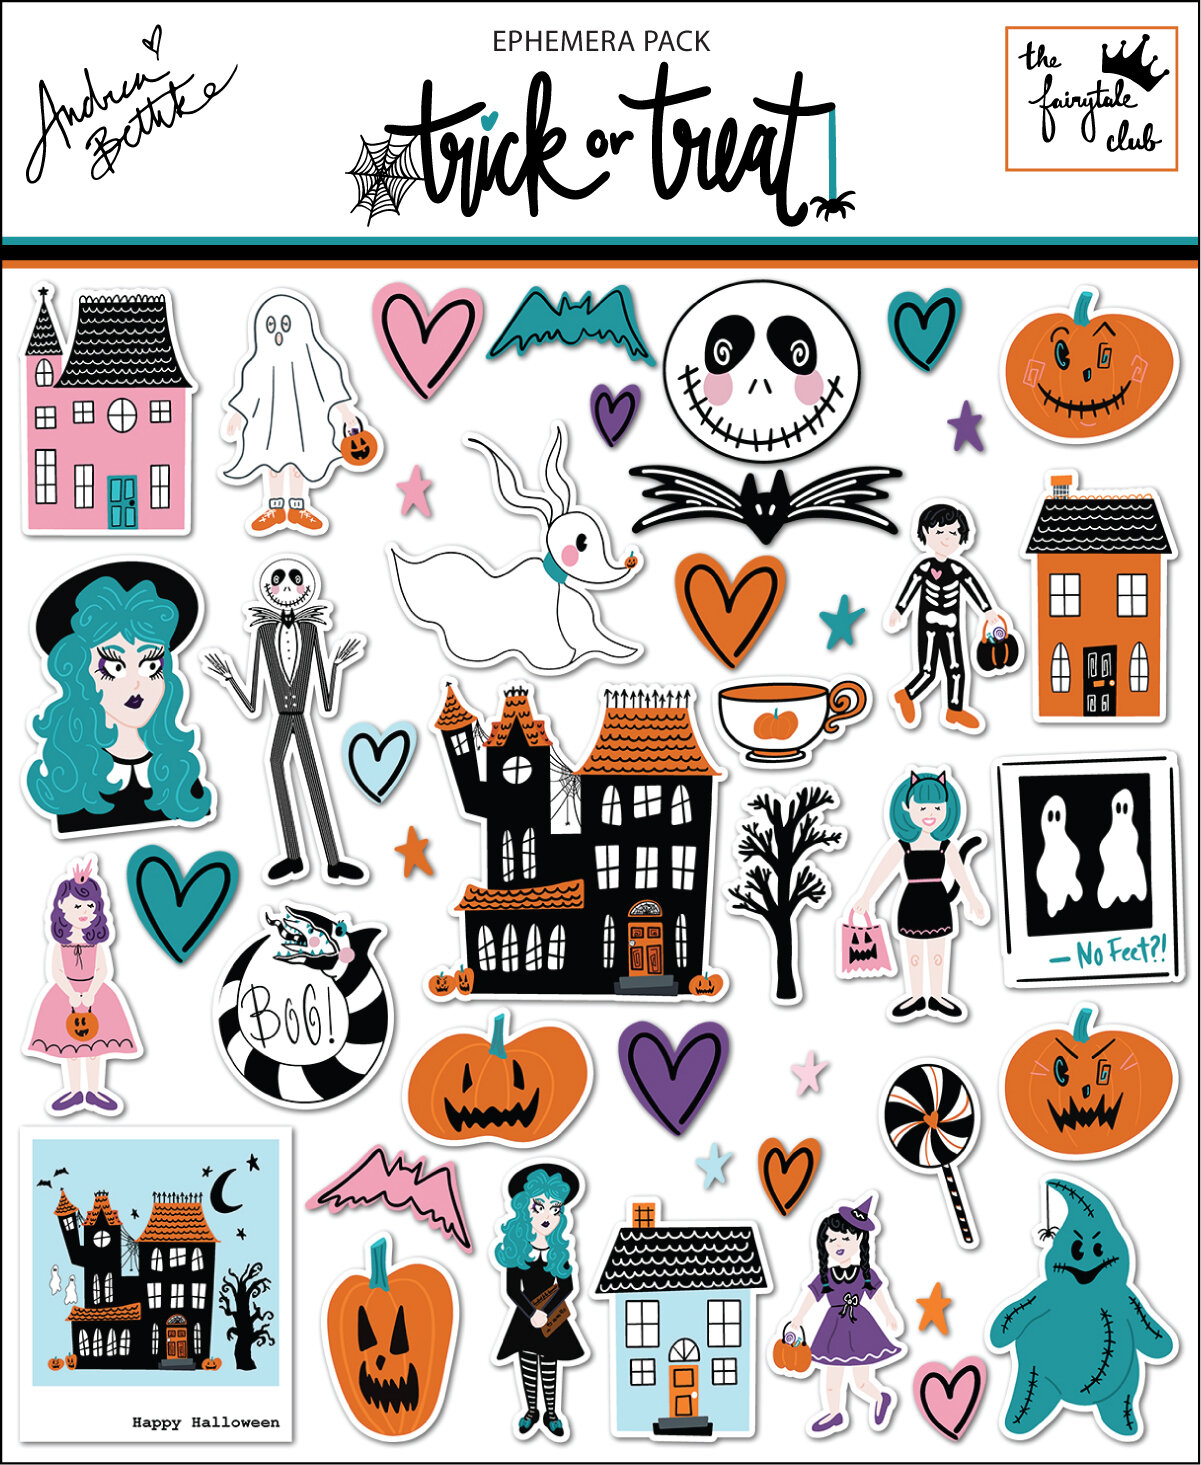 Trick or Treat - Ephemera Pack with top piece-07.jpg